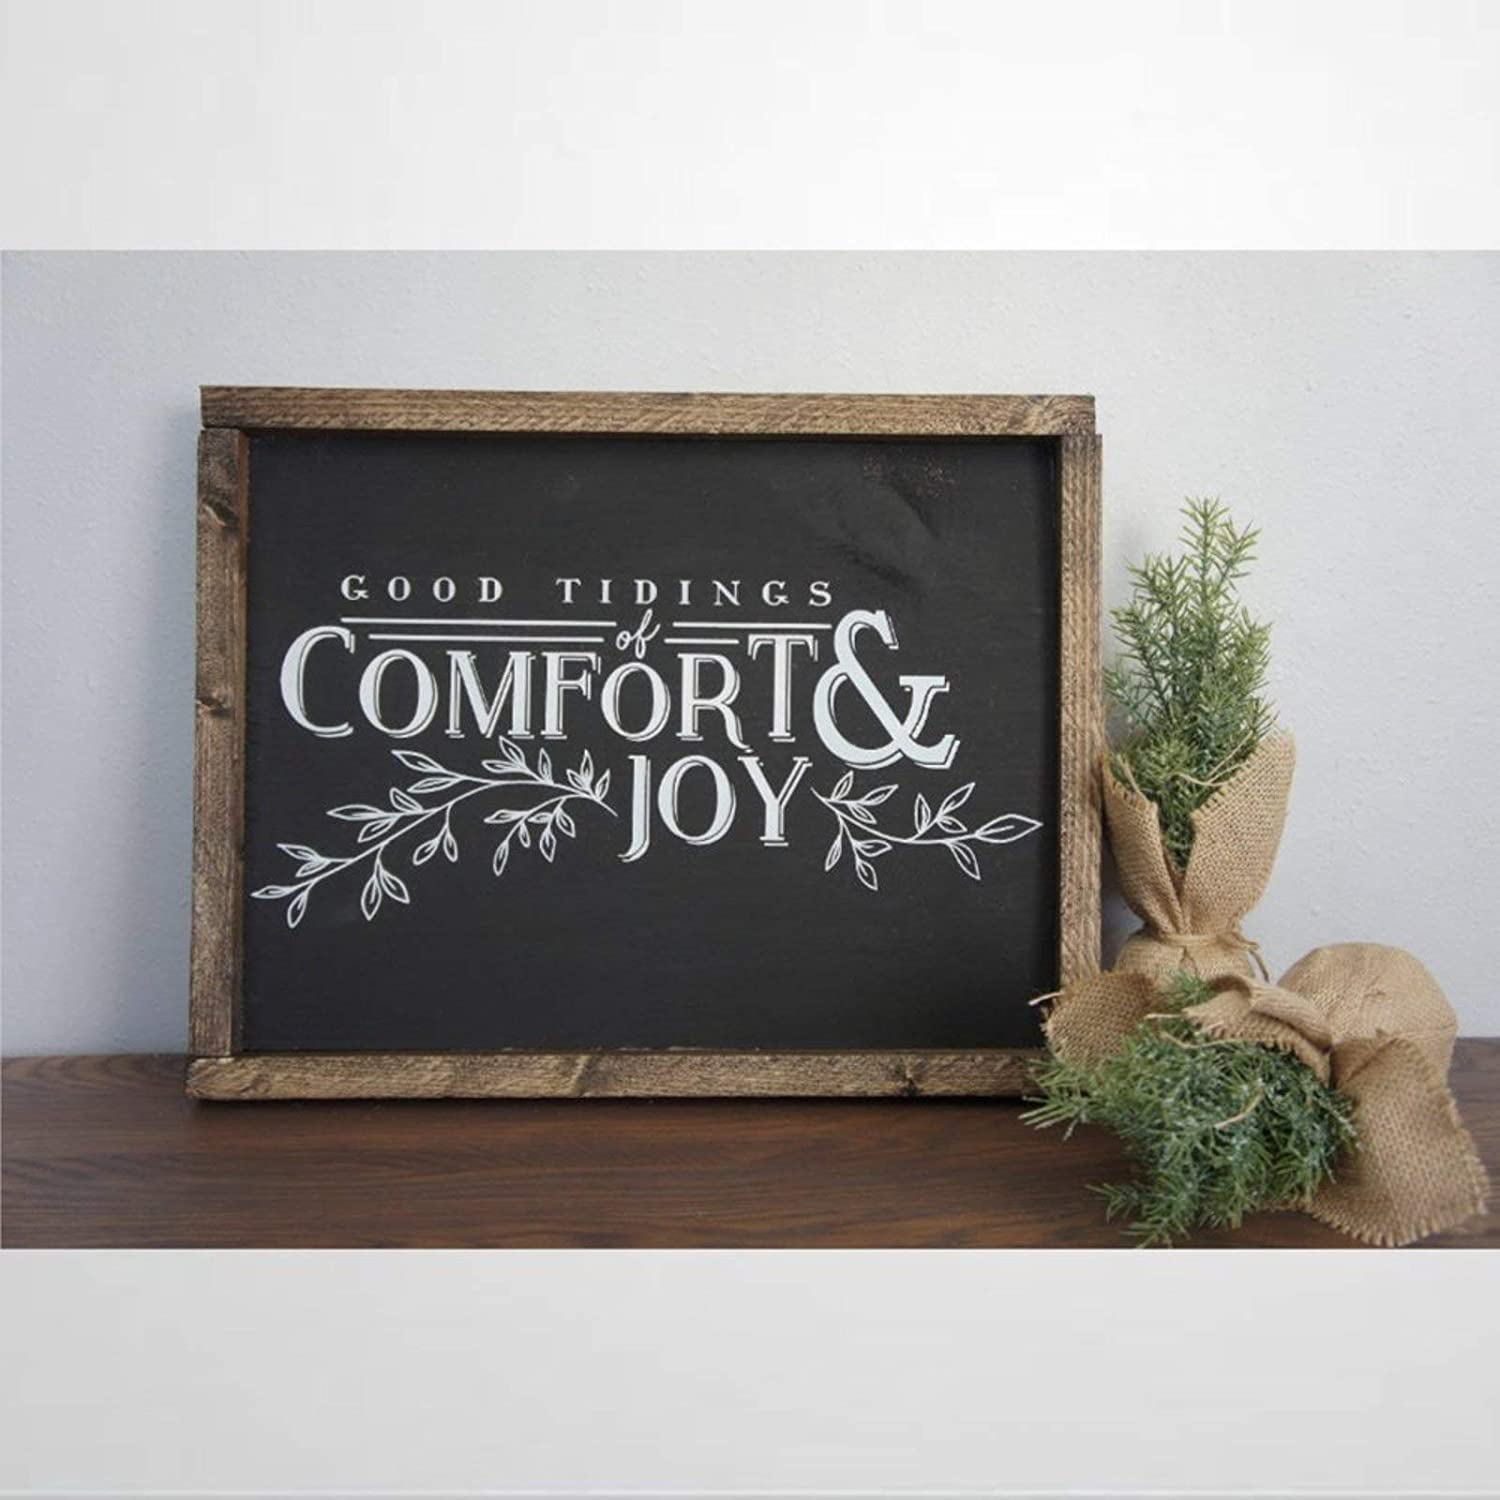 BYRON HOYLE Good Tidings of Comfort and Joy Framed Wood Sign, Wooden Wall Hanging Art, Inspirational Farmhouse Wall Plaque, Rustic Home Decor for Nursery, Porch, Gallery Wall, Housewarming